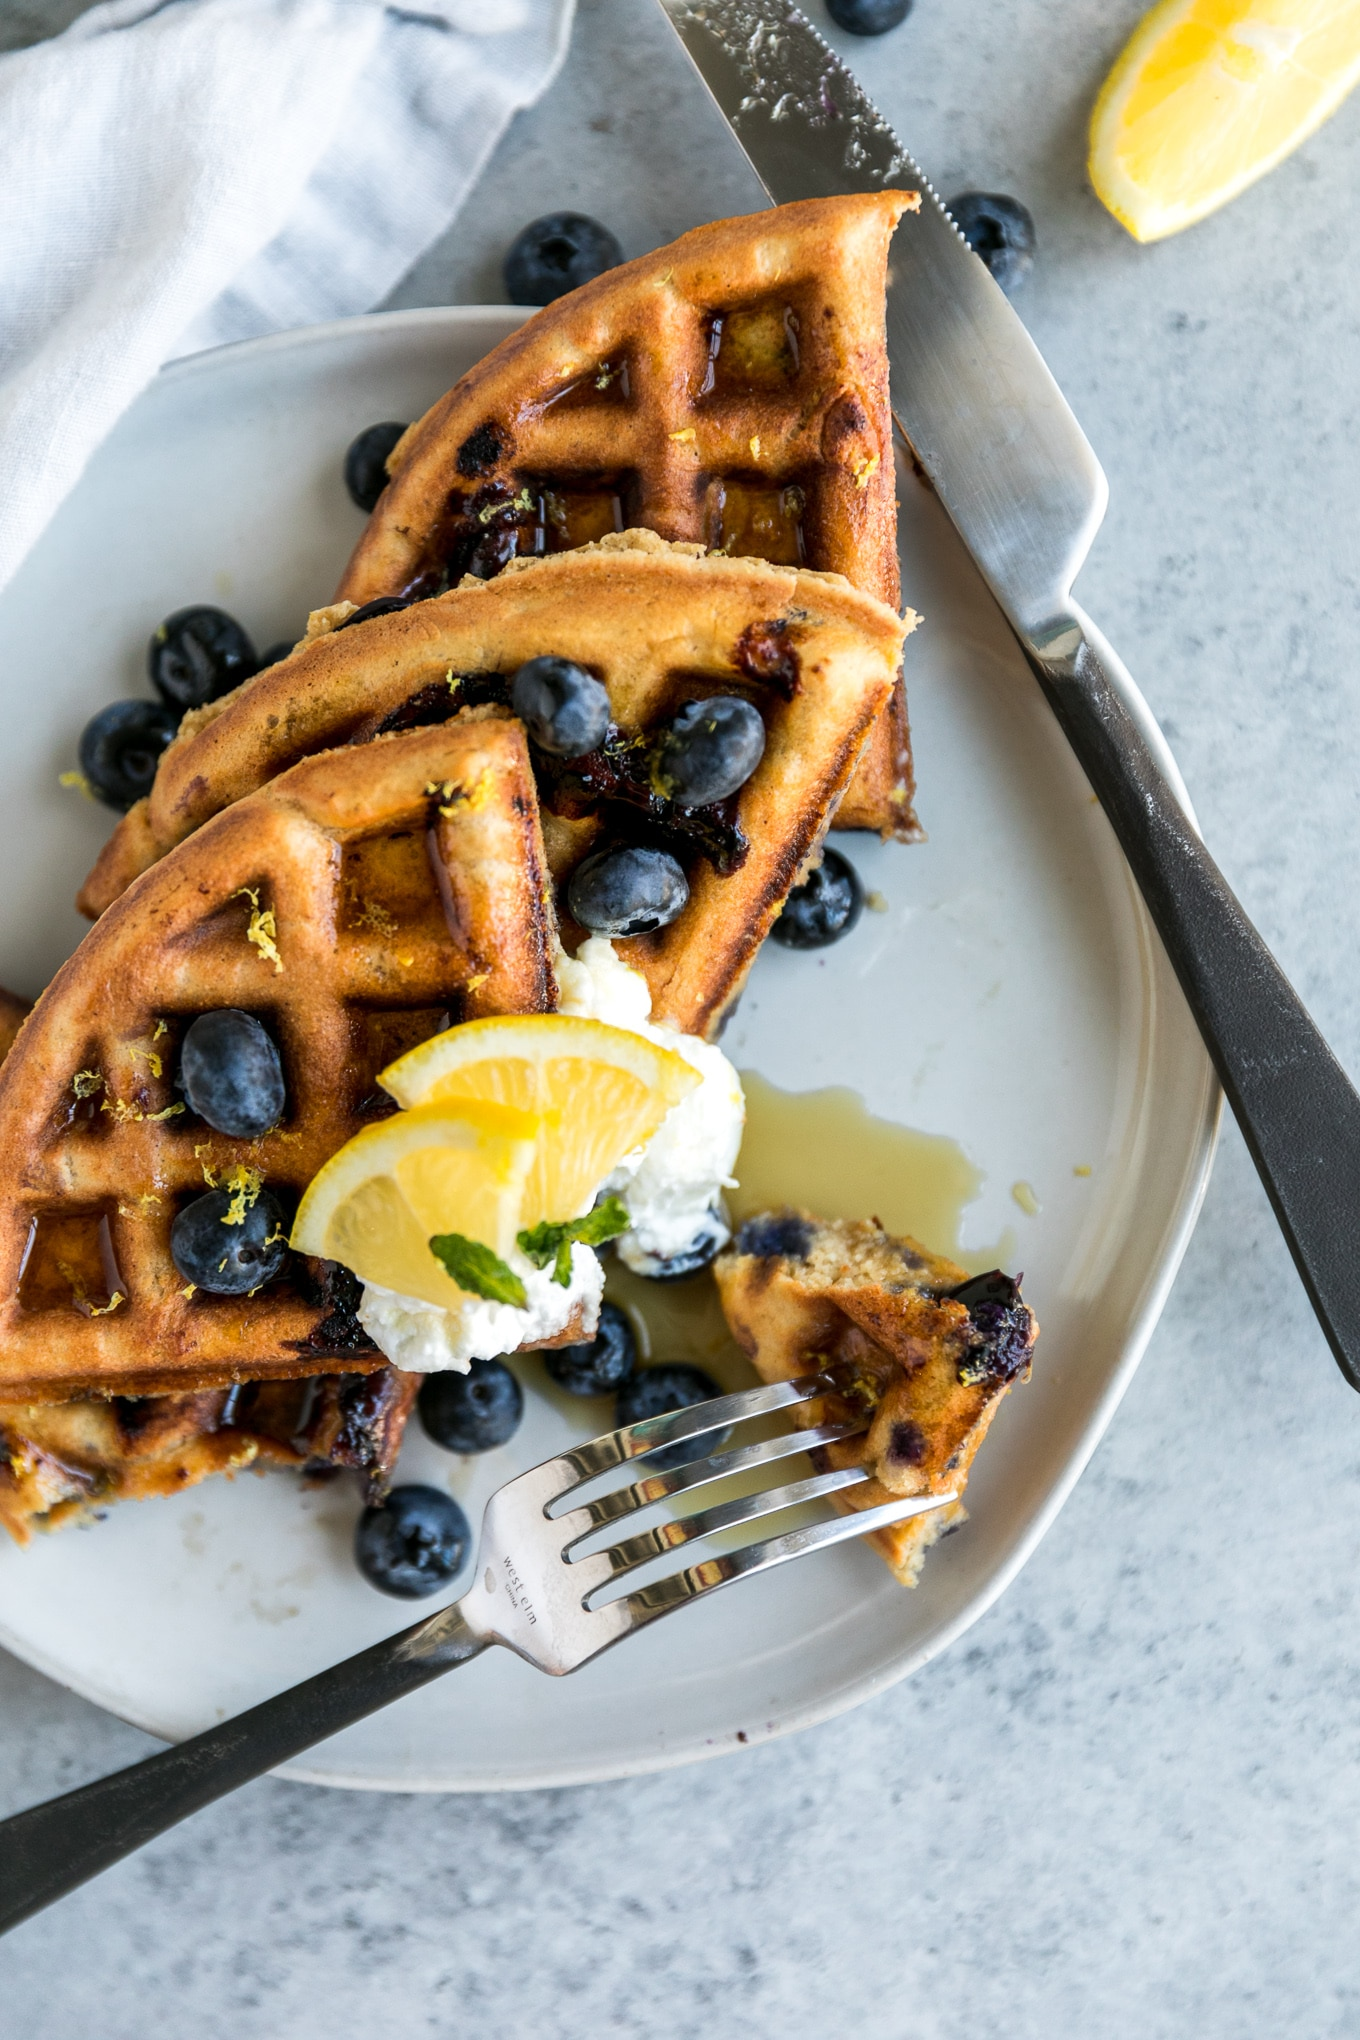 Overhead close up shot of a plate of waffles being cut into with a fork